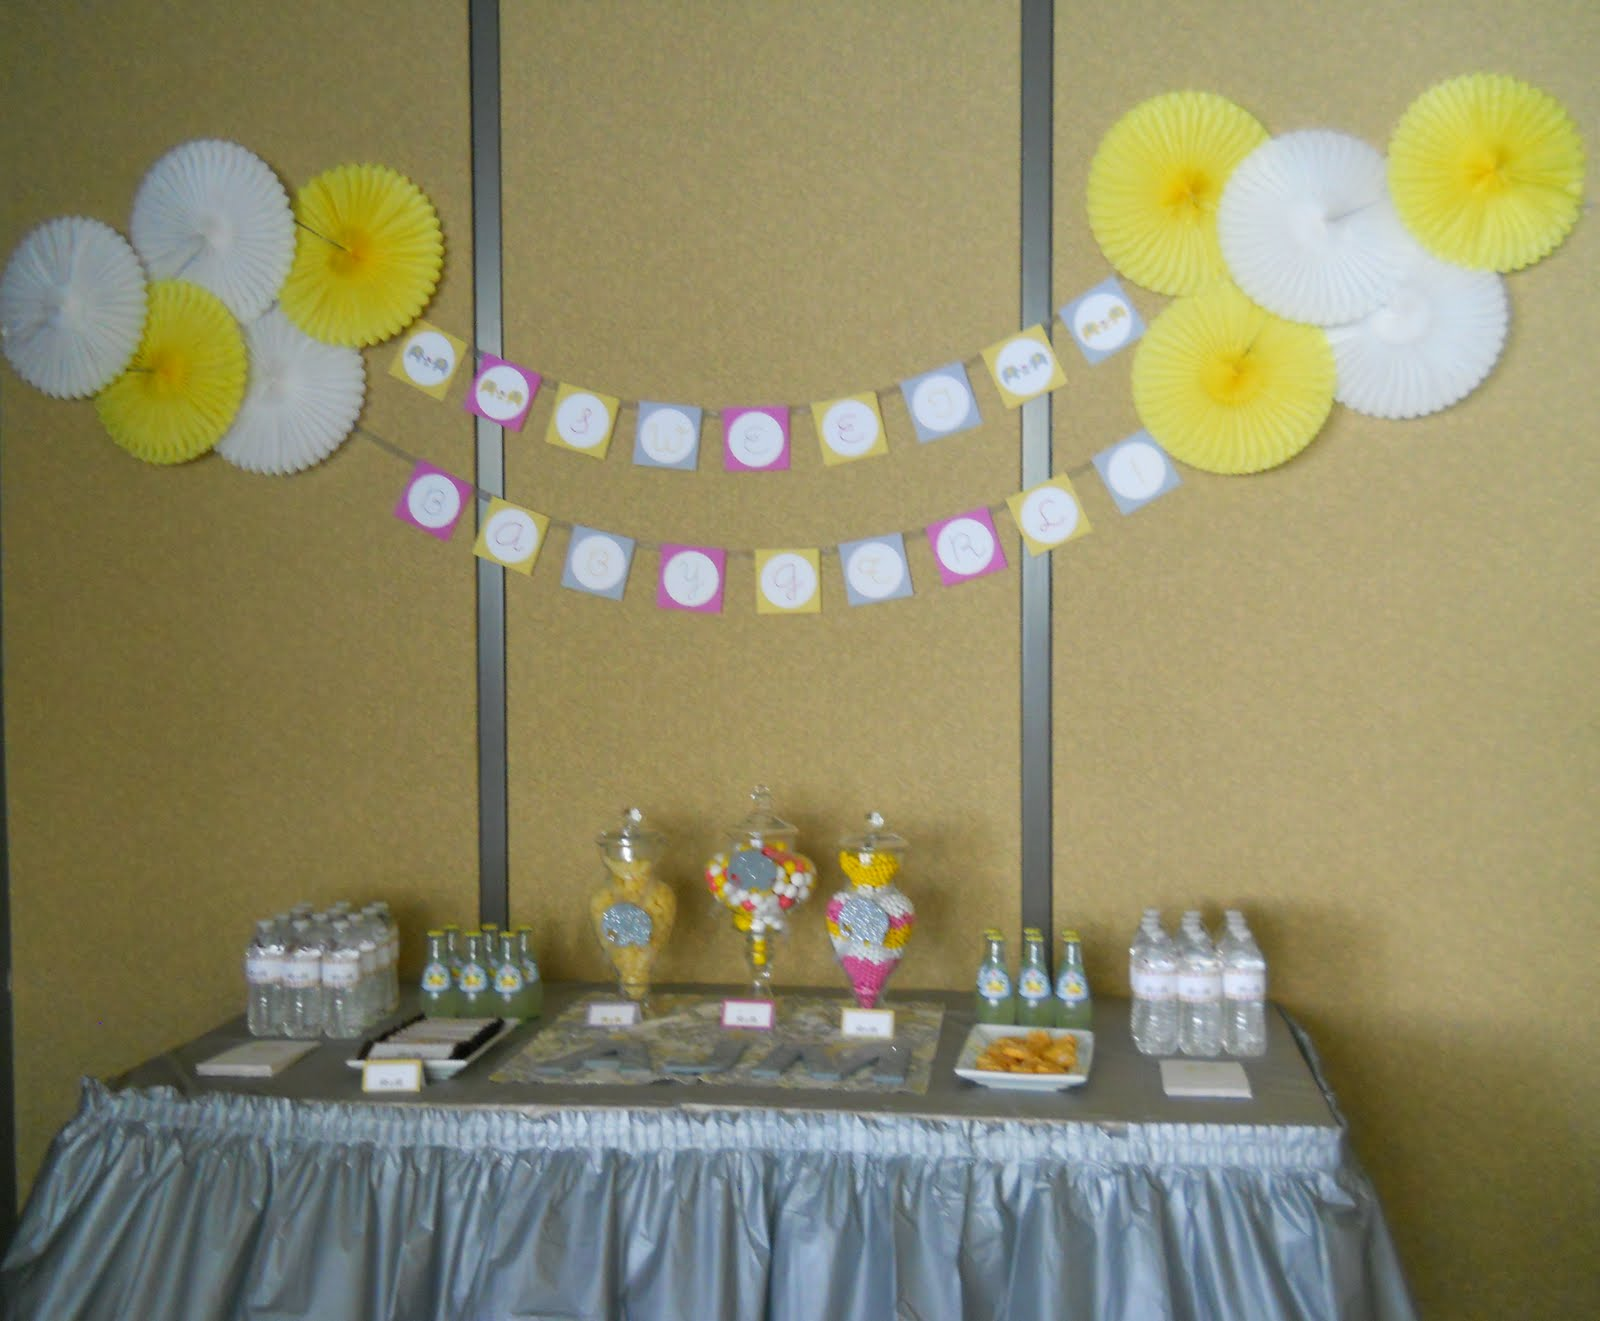 Baby shower decoration ideas interior home design for Baby shower decoration pictures ideas